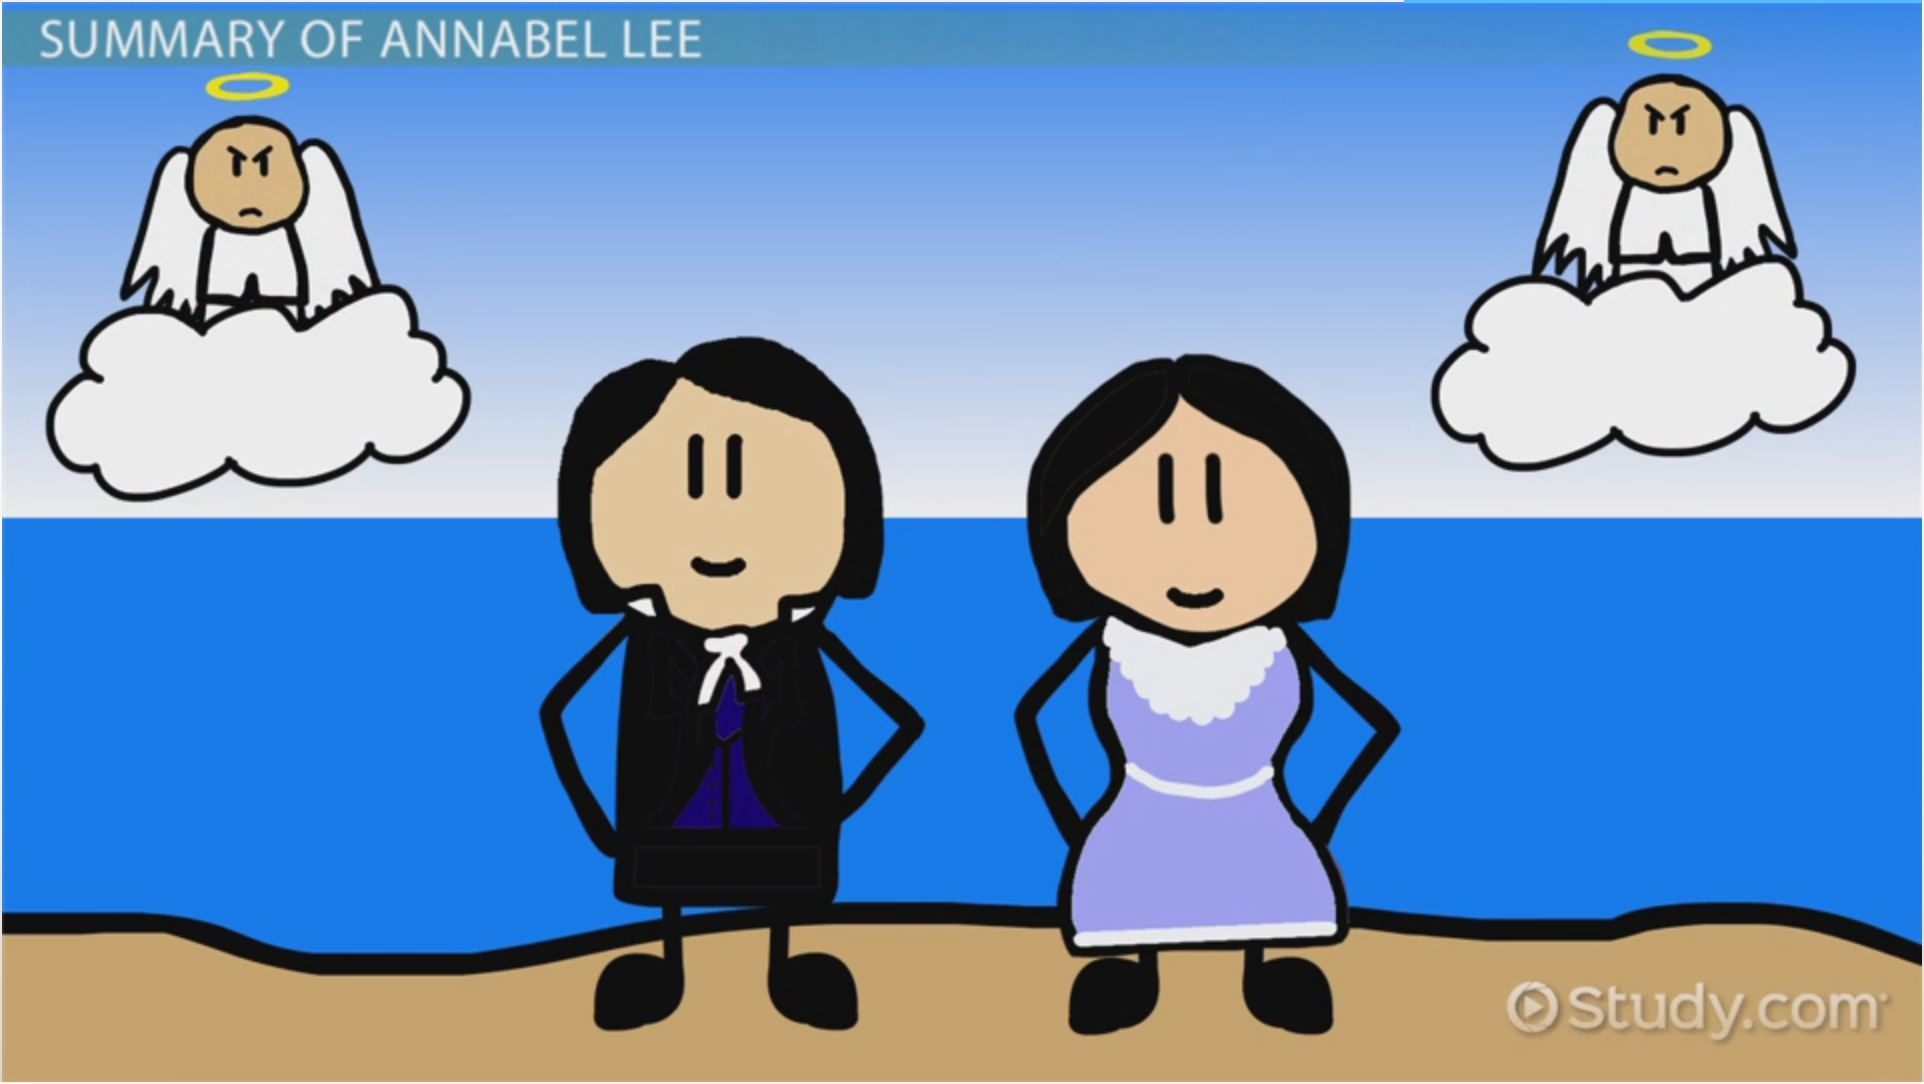 Buy Research Papers Online Cheap Annabel Lee